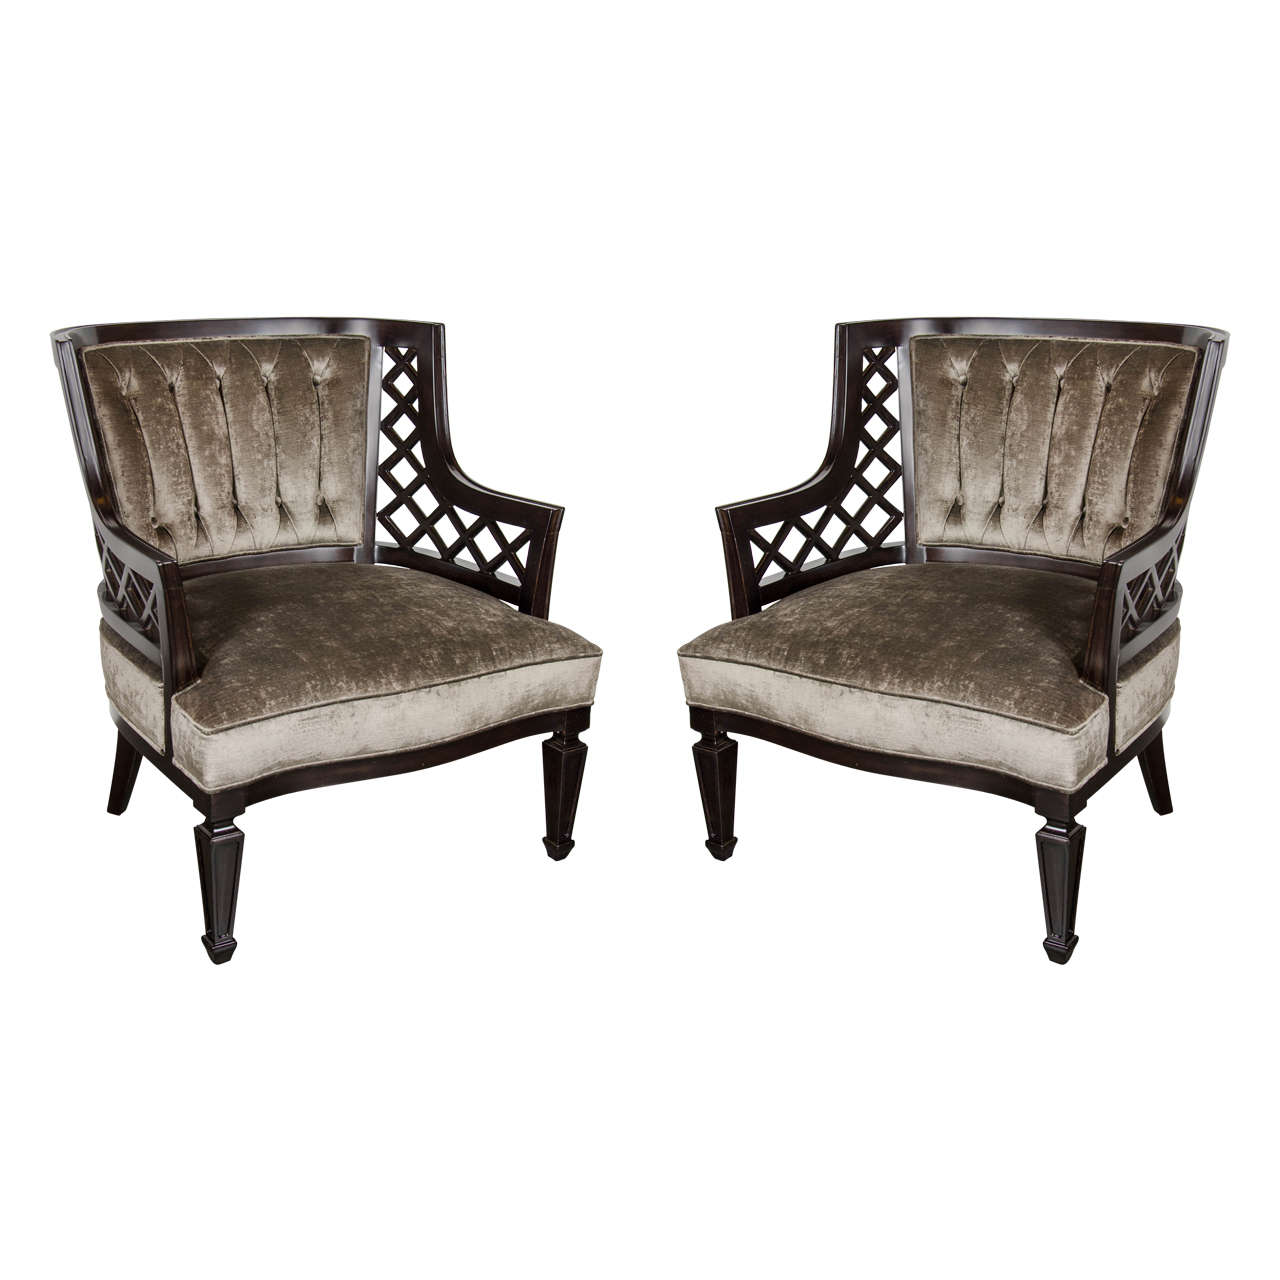 Pair of mid century modernist lattice design occasional chairs for sale